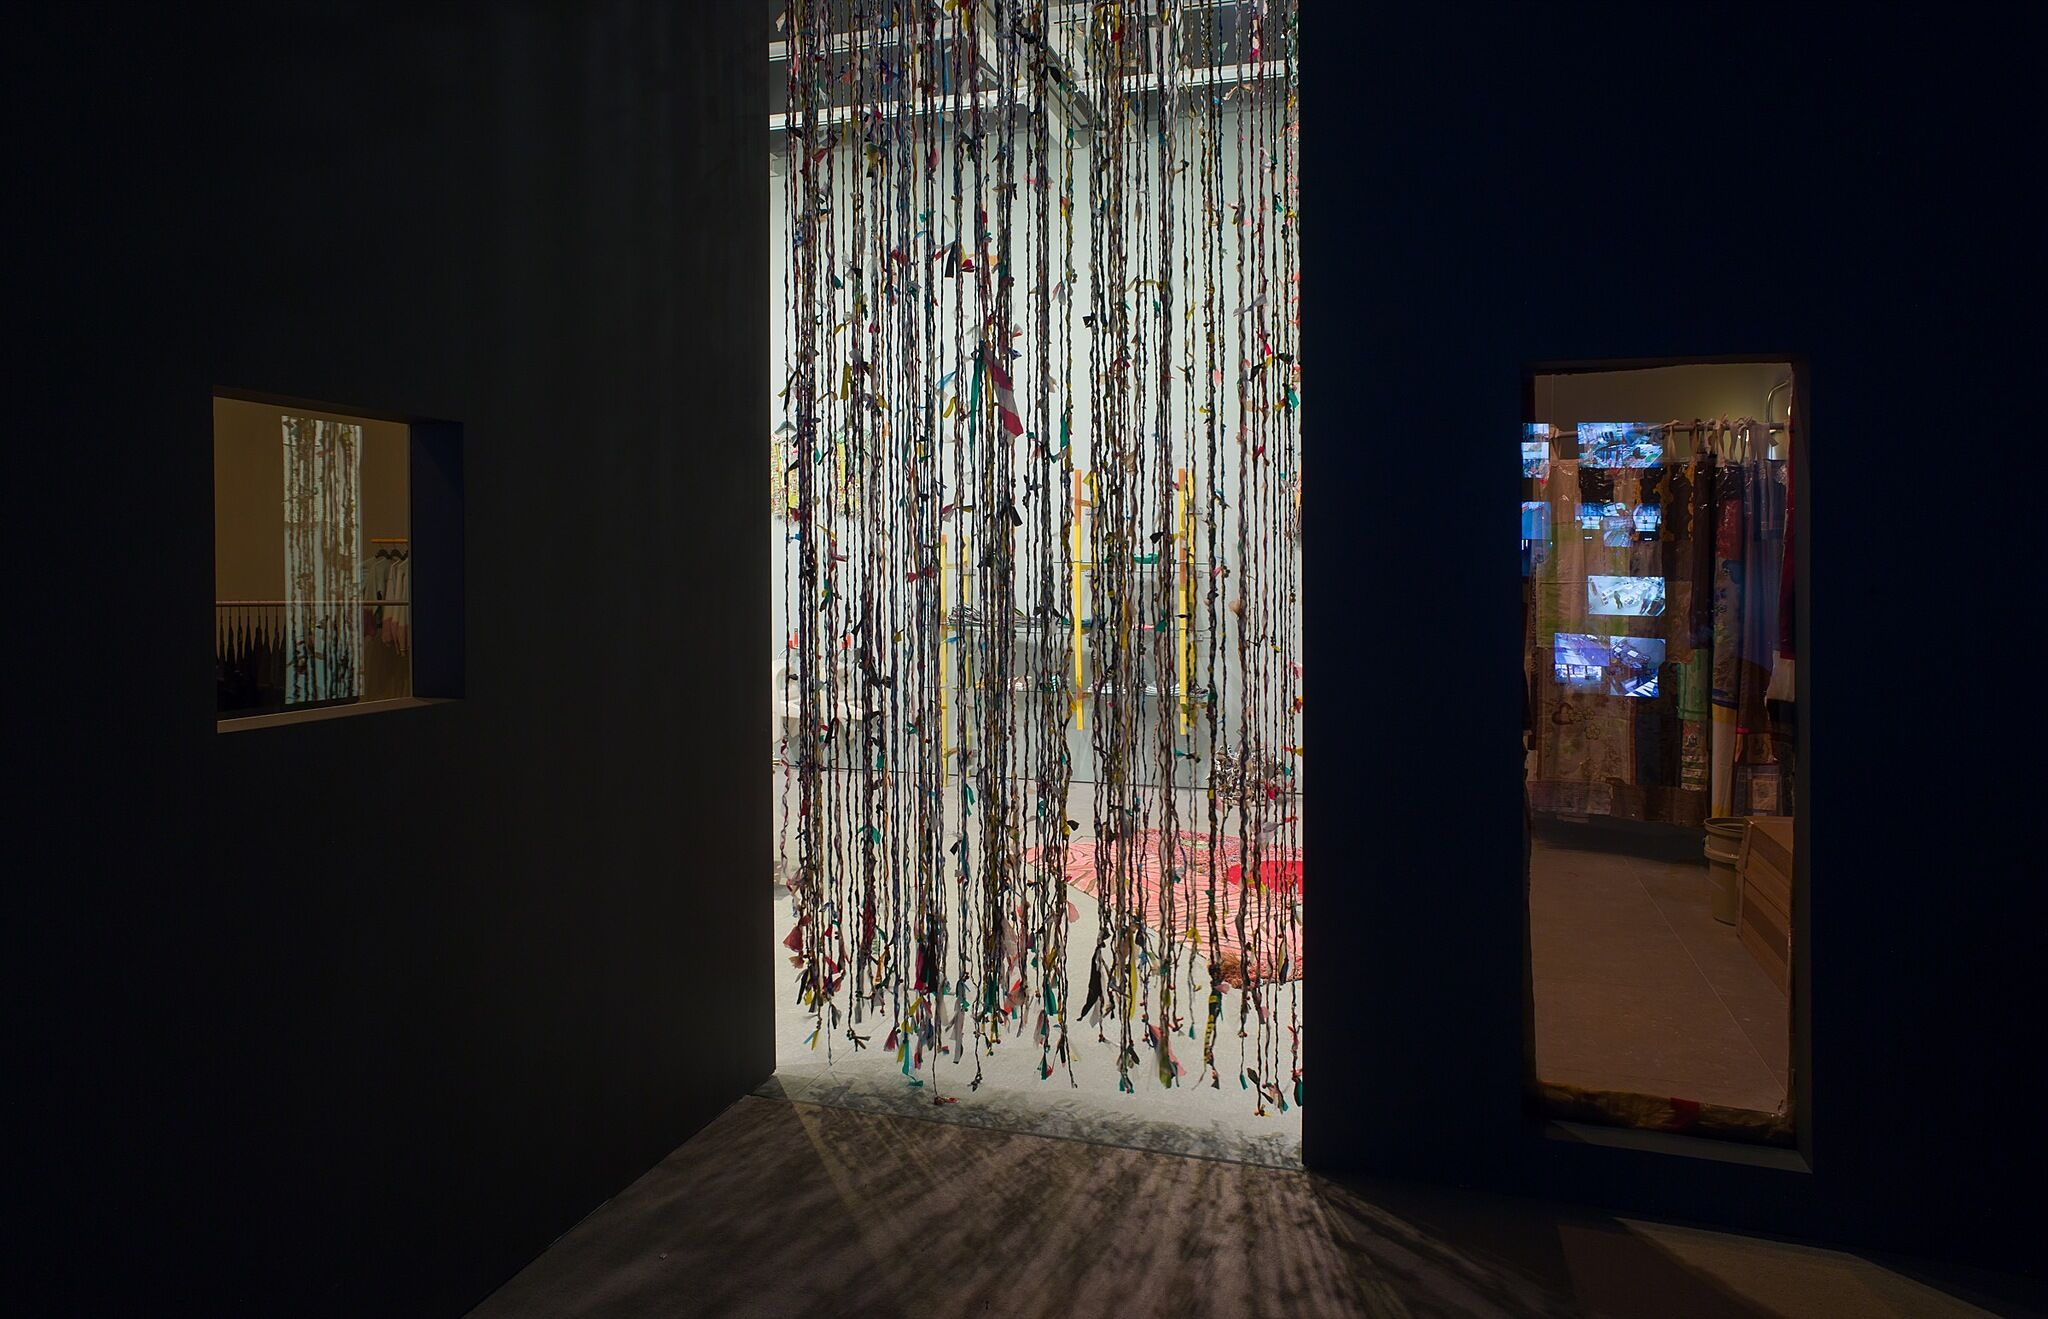 A dimly lit gallery space made to look like a dressing room with a beaded curtain.